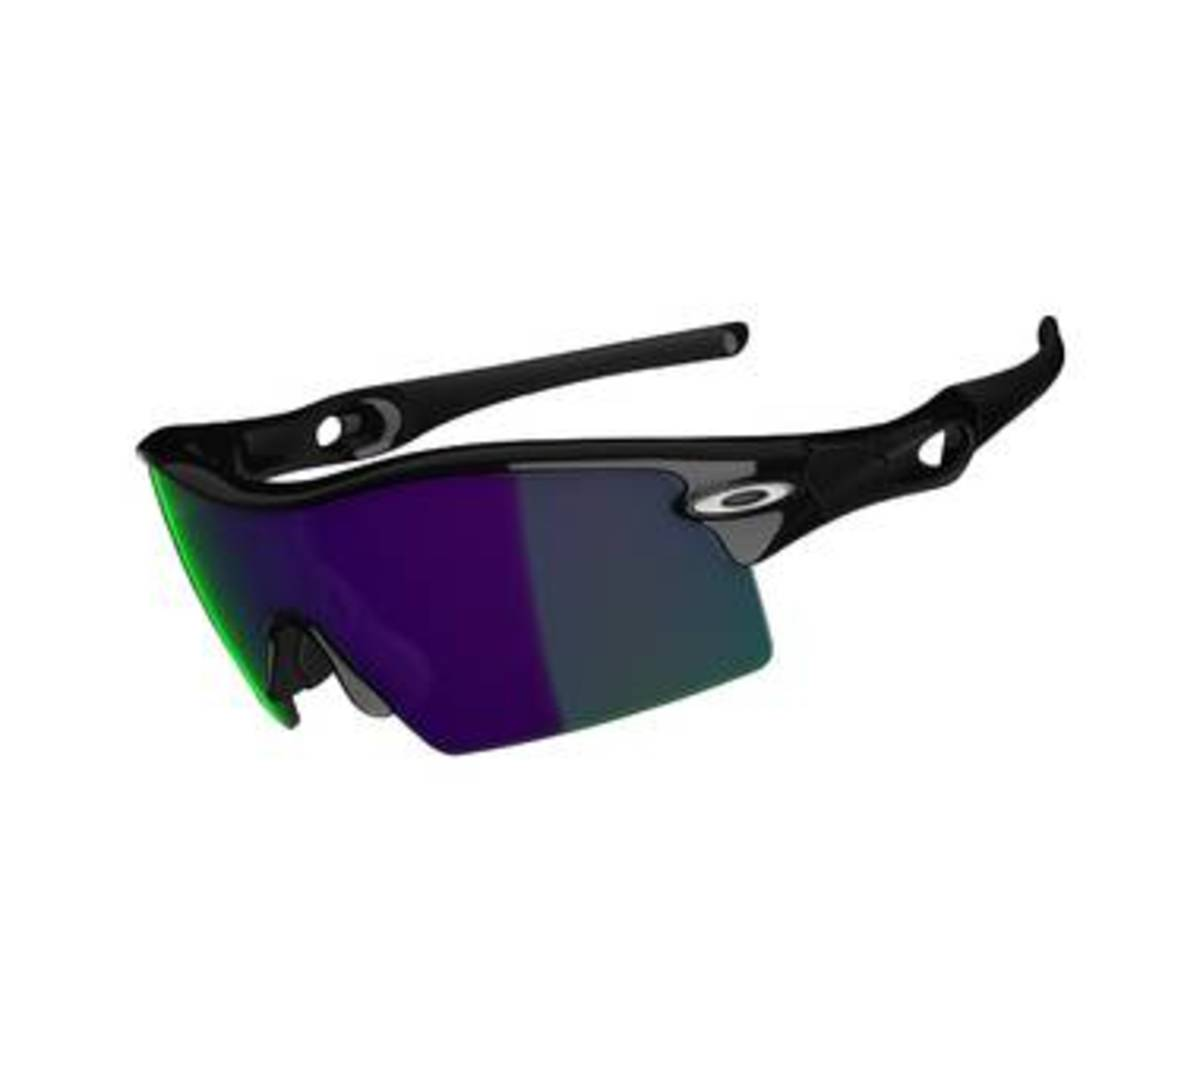 cheap real oakleys  How to tell if / Spot Fake or real Oakley Sunglasses / are fake ...